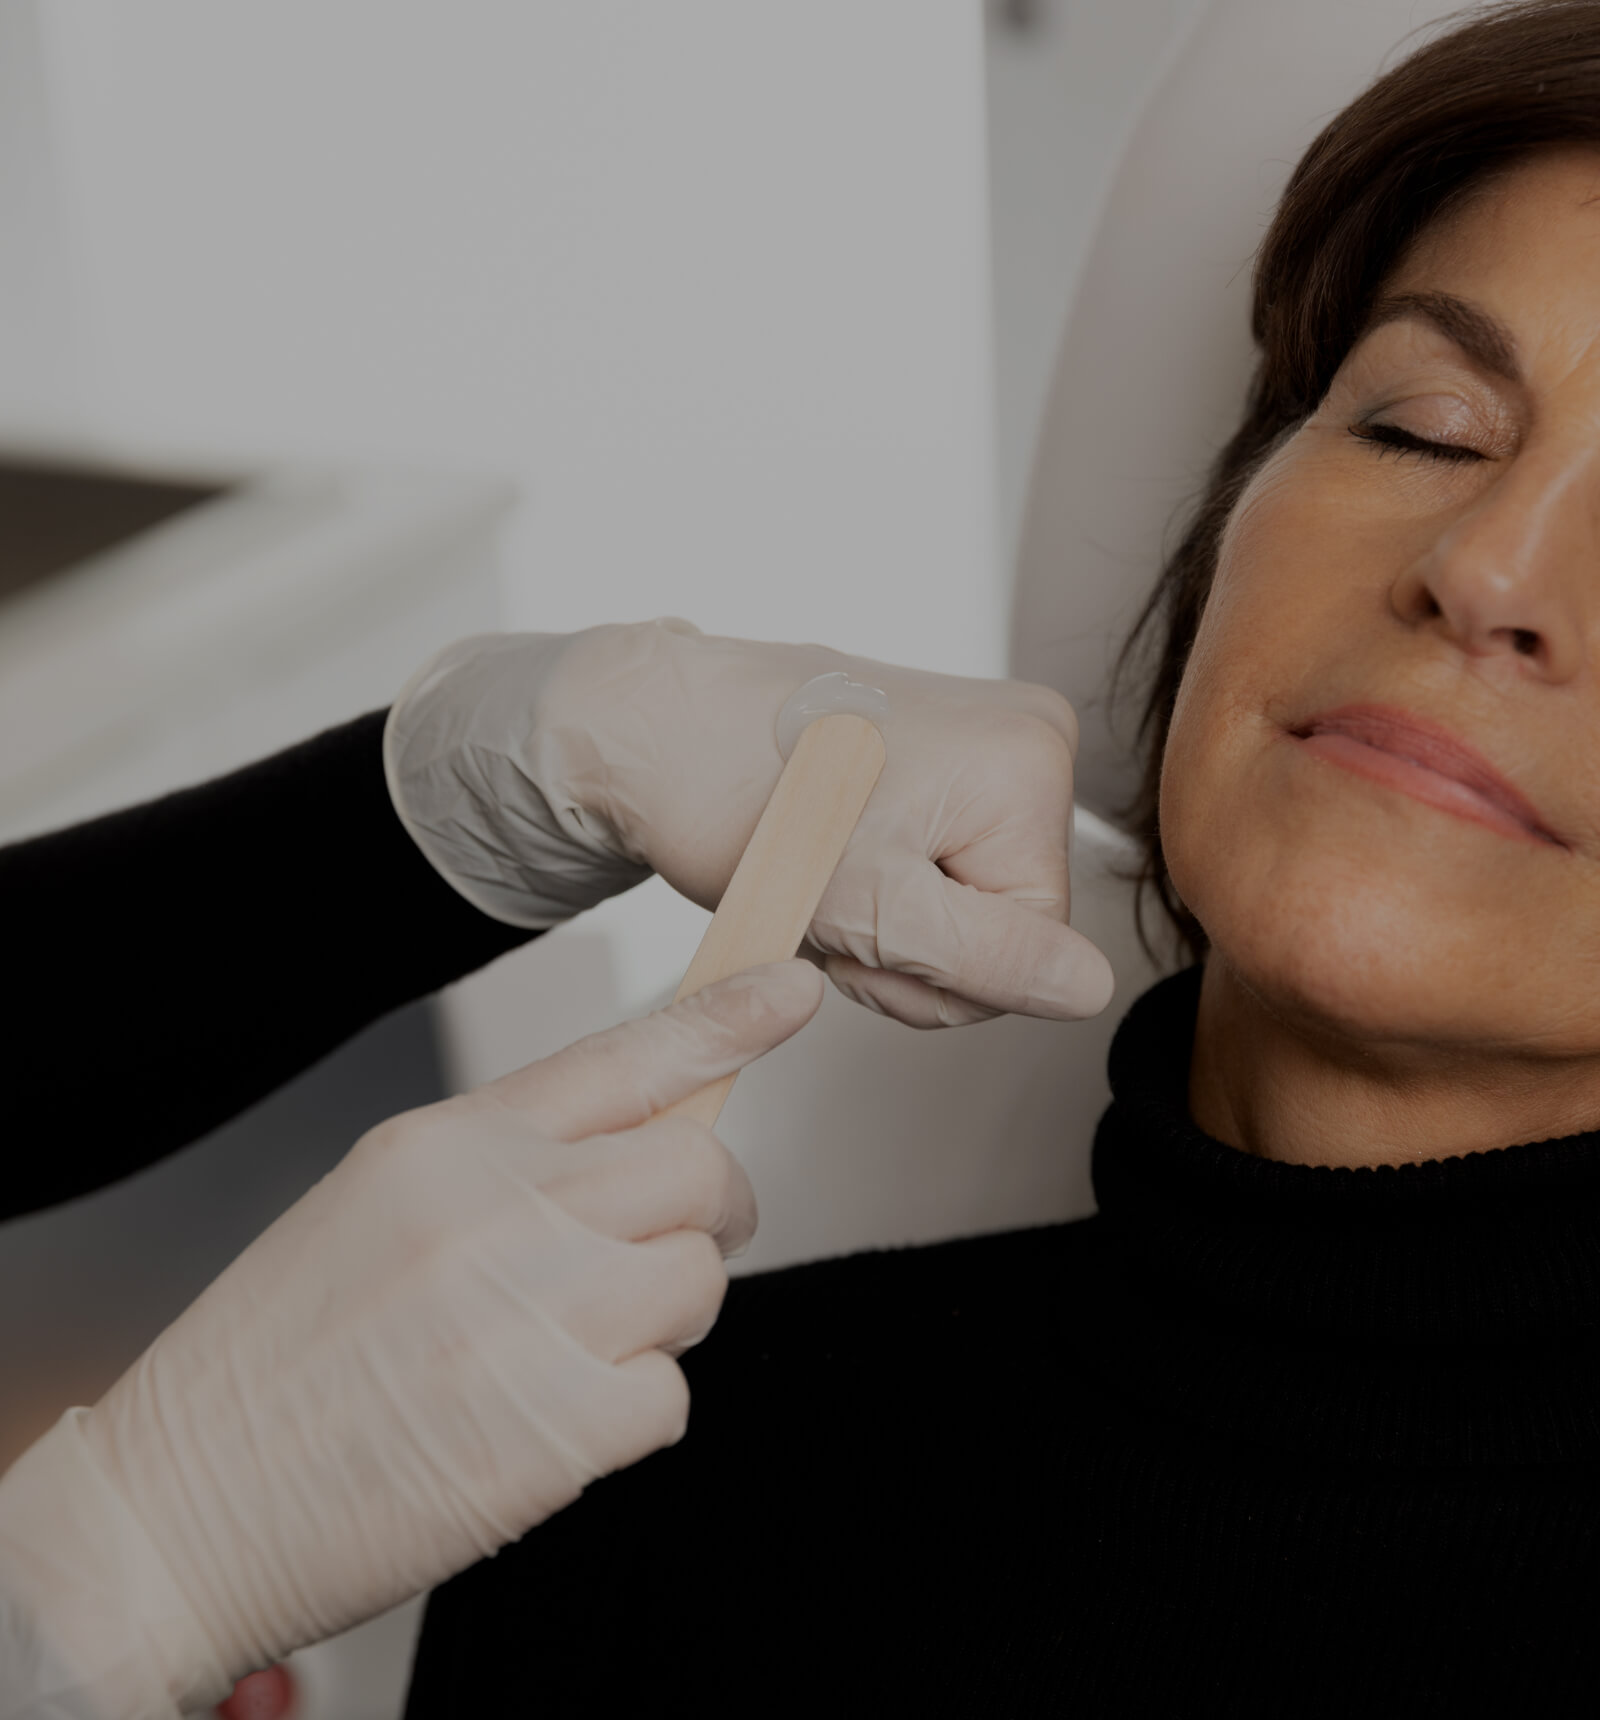 A medico-aesthetic technician from Clinique Chloé applying gel to the face of a patient before an IPL treatment